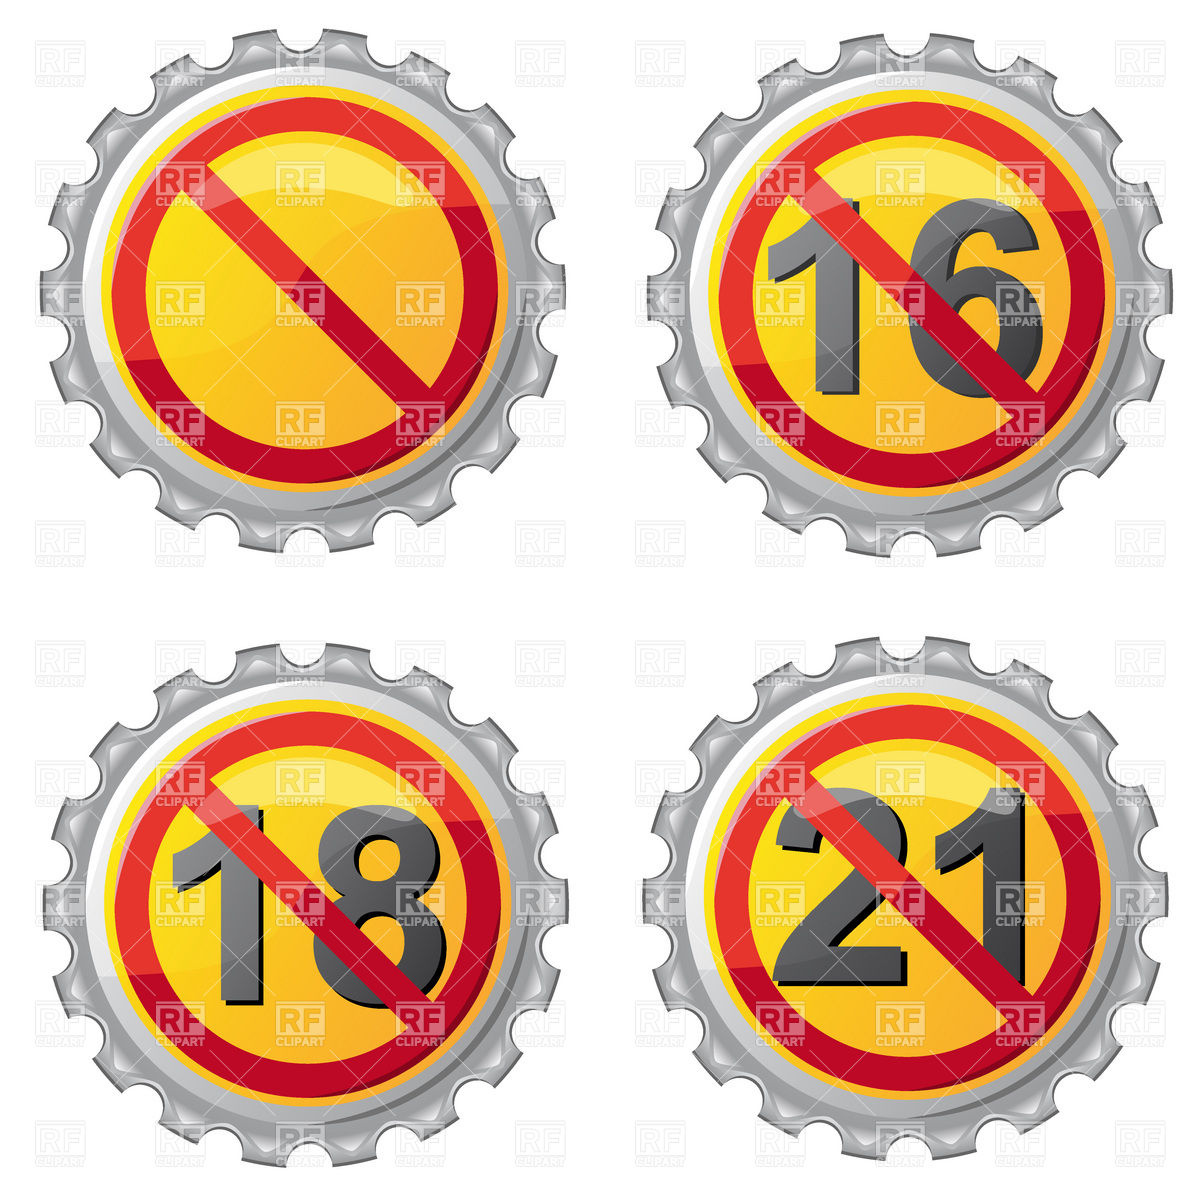 Beer lids with age restriction sign Vector Image #19137.